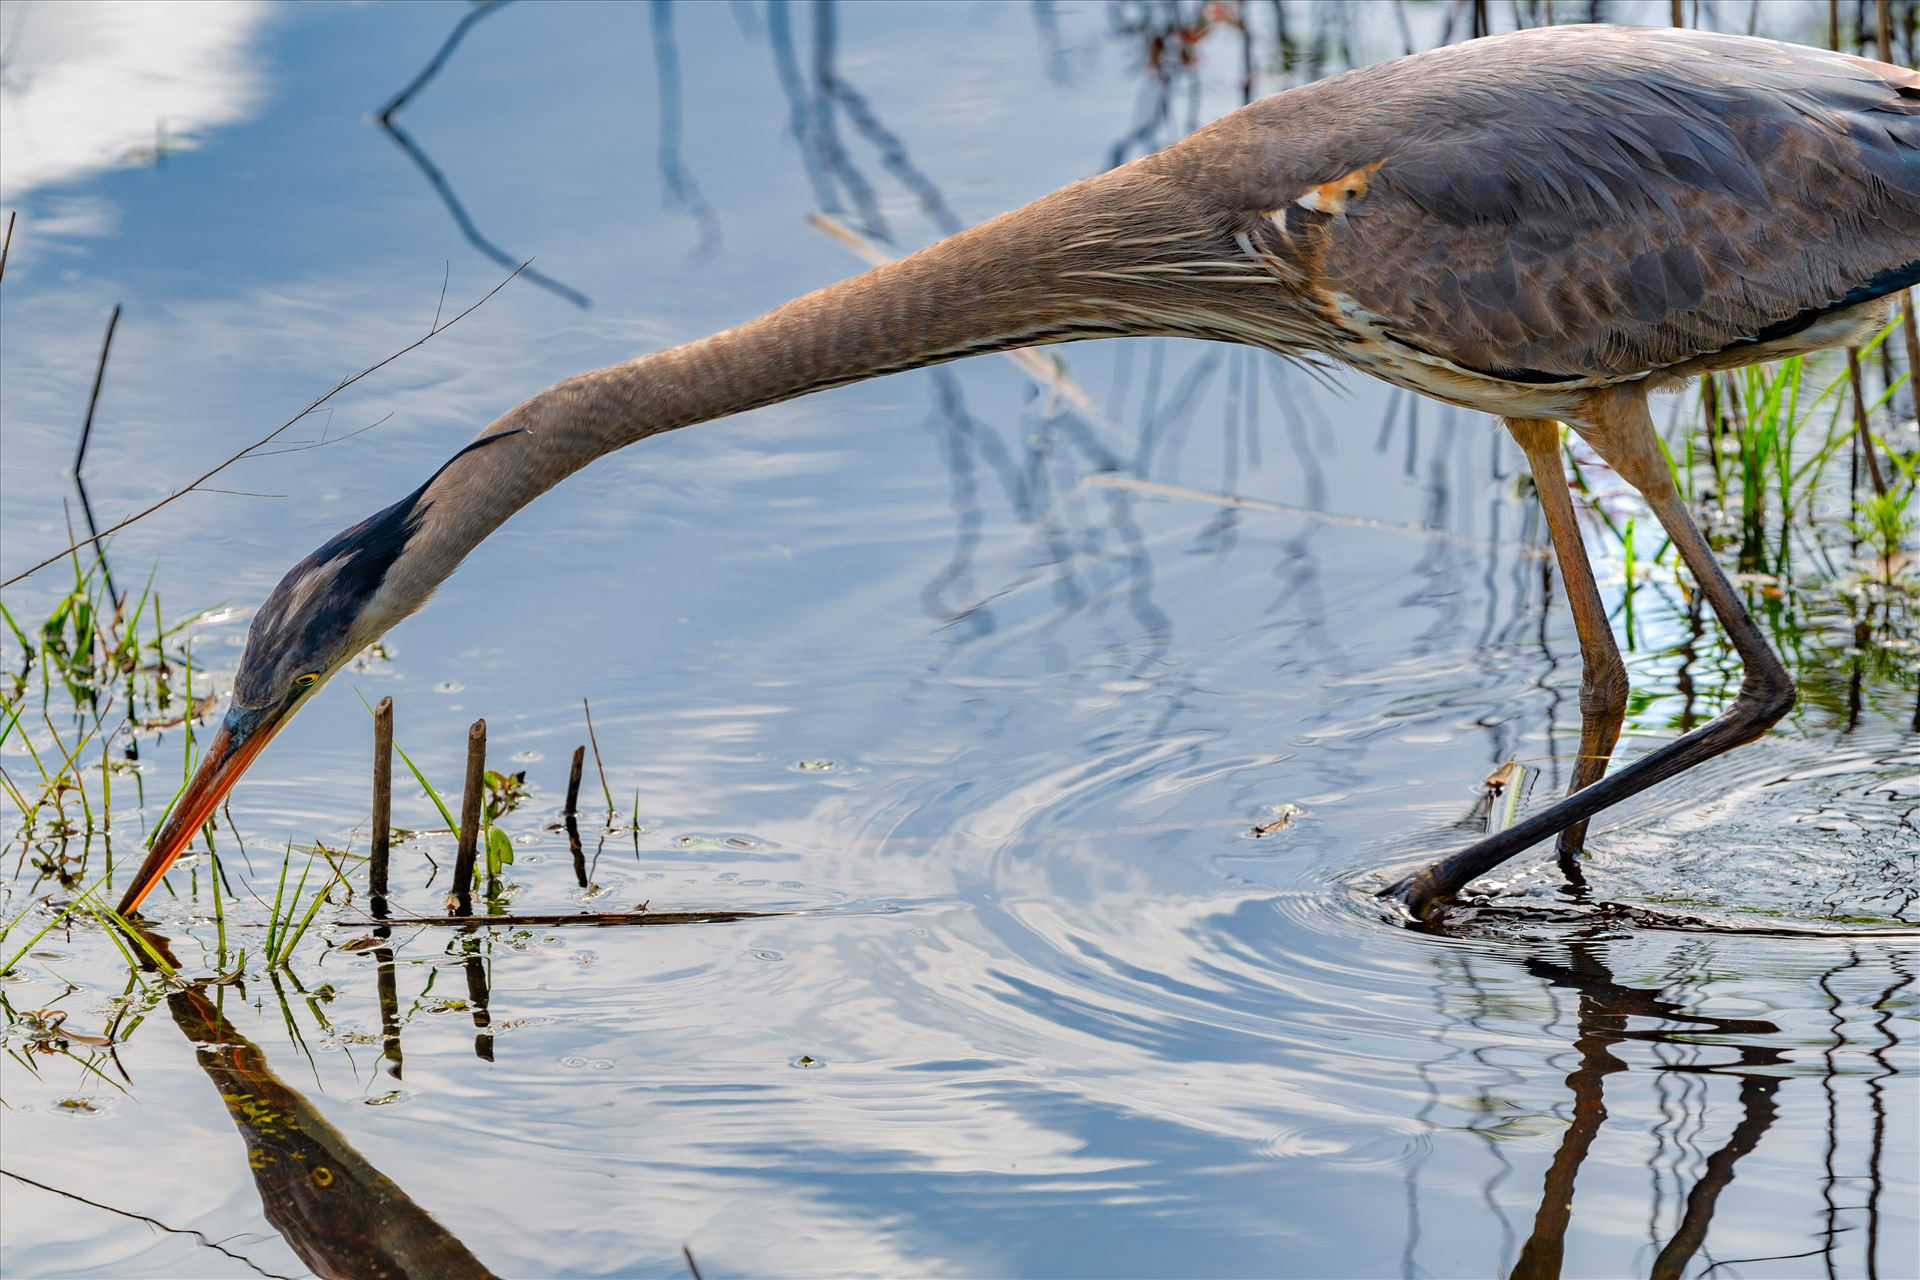 great blue heron great blue heron fishing in gator lake at St. Andrews State Park, Florida by Terry Kelly Photography